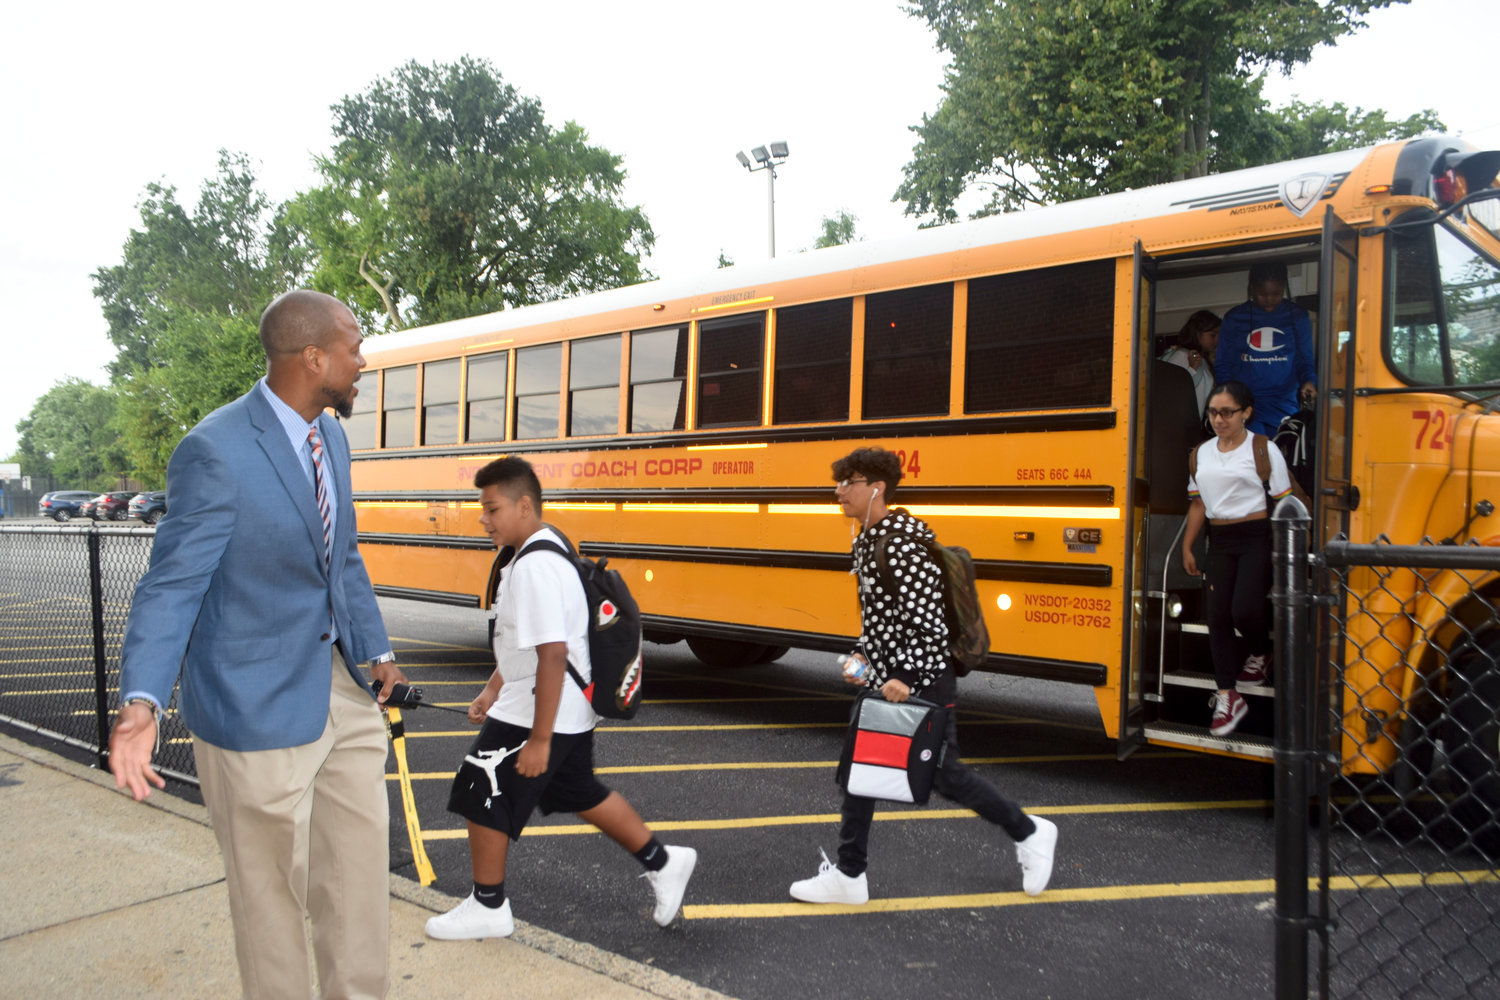 It is still unknown if Lawrence Middle School Principal Willis Perry will get to welcome students back to school in September, as he did last year.